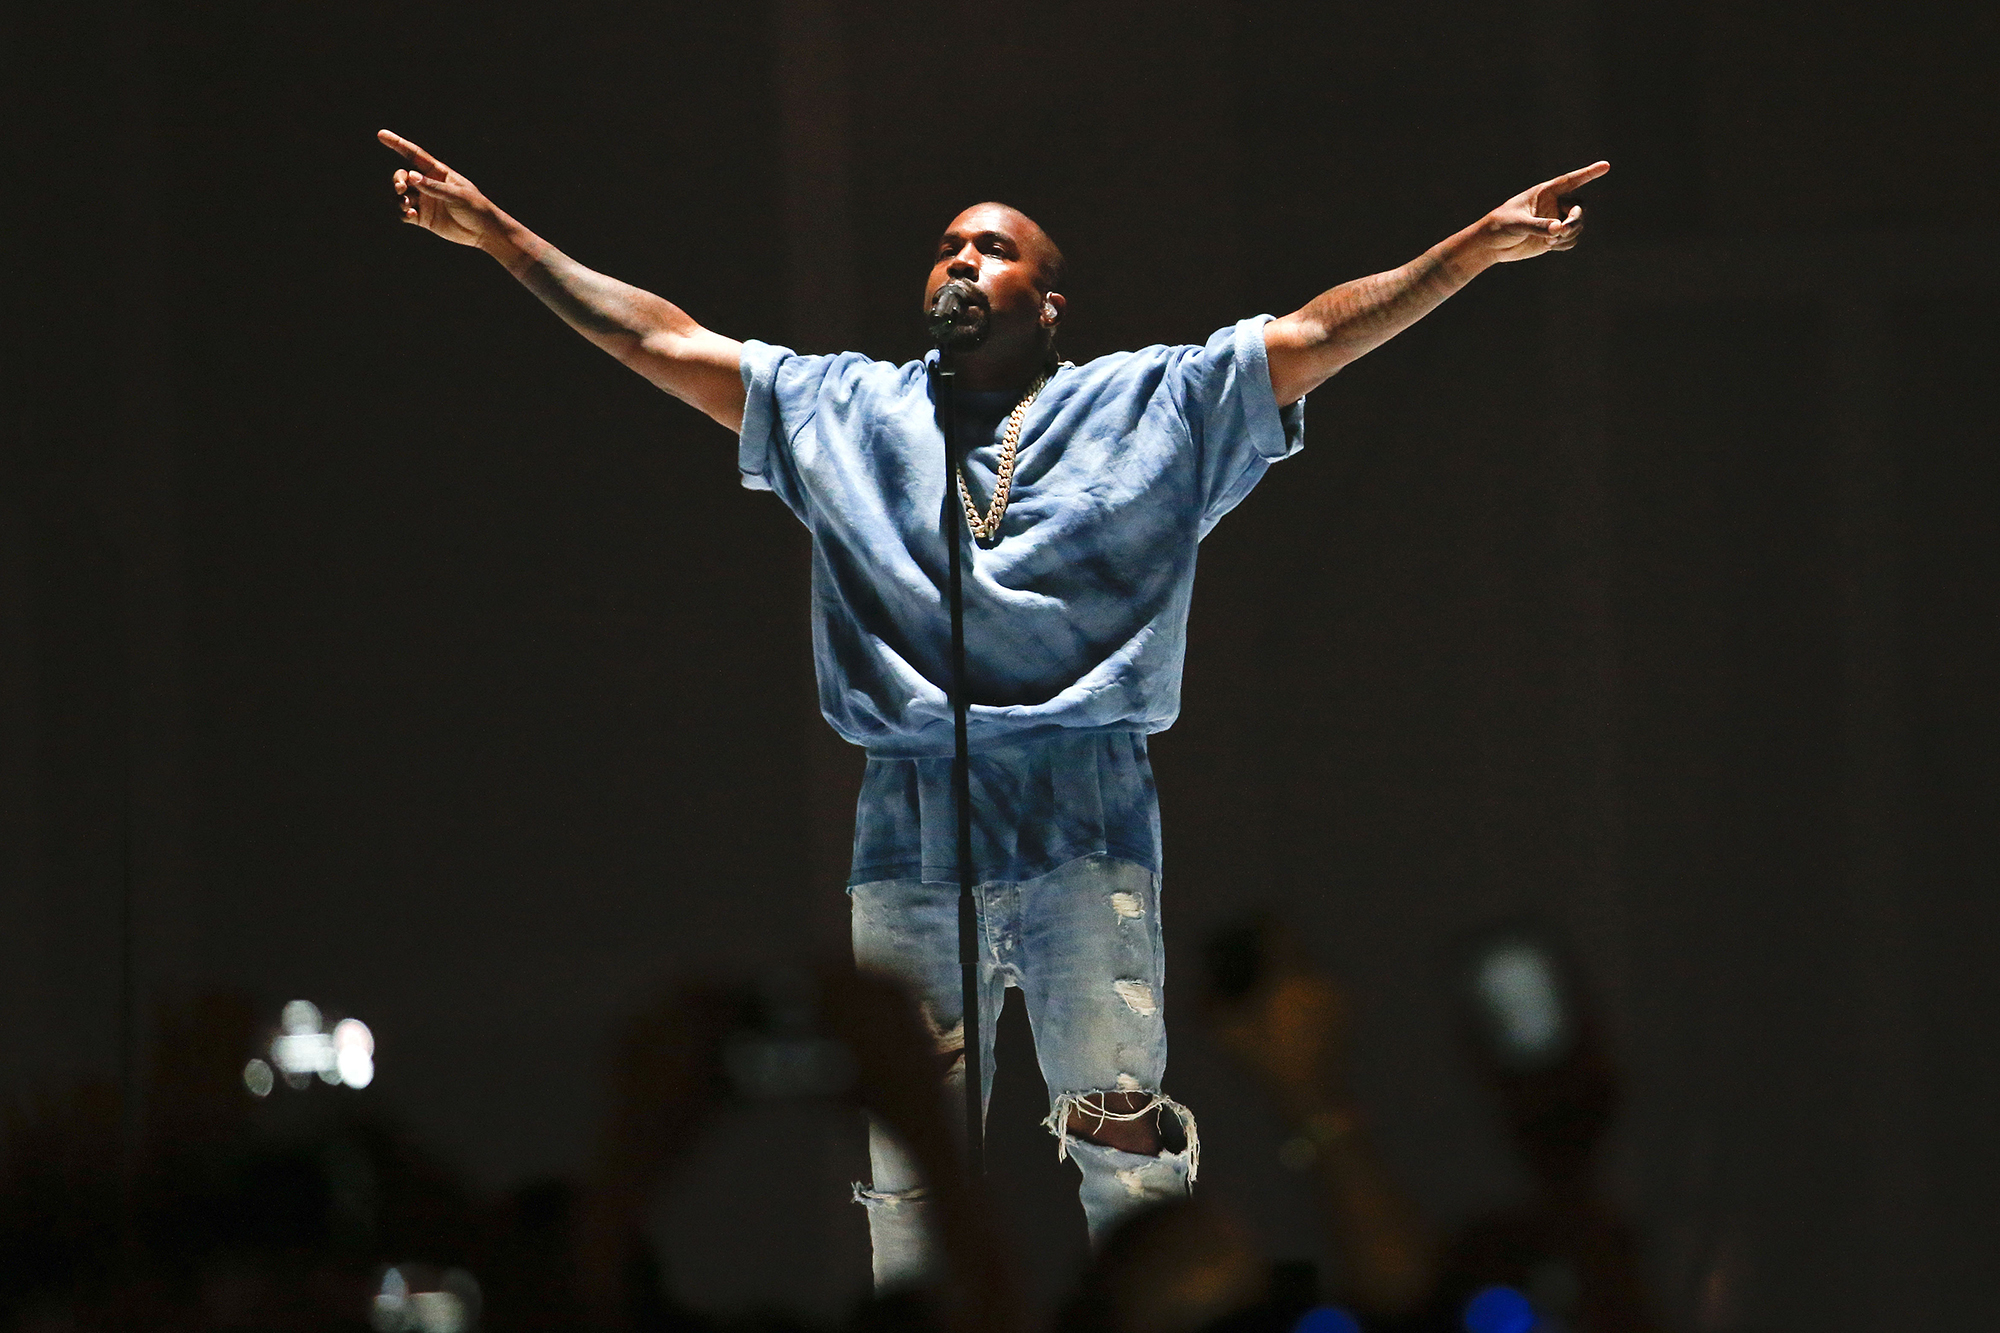 Buy Tickets to See Kanye West Perform Live at Upcoming Gala & Art Show in the Hamptons